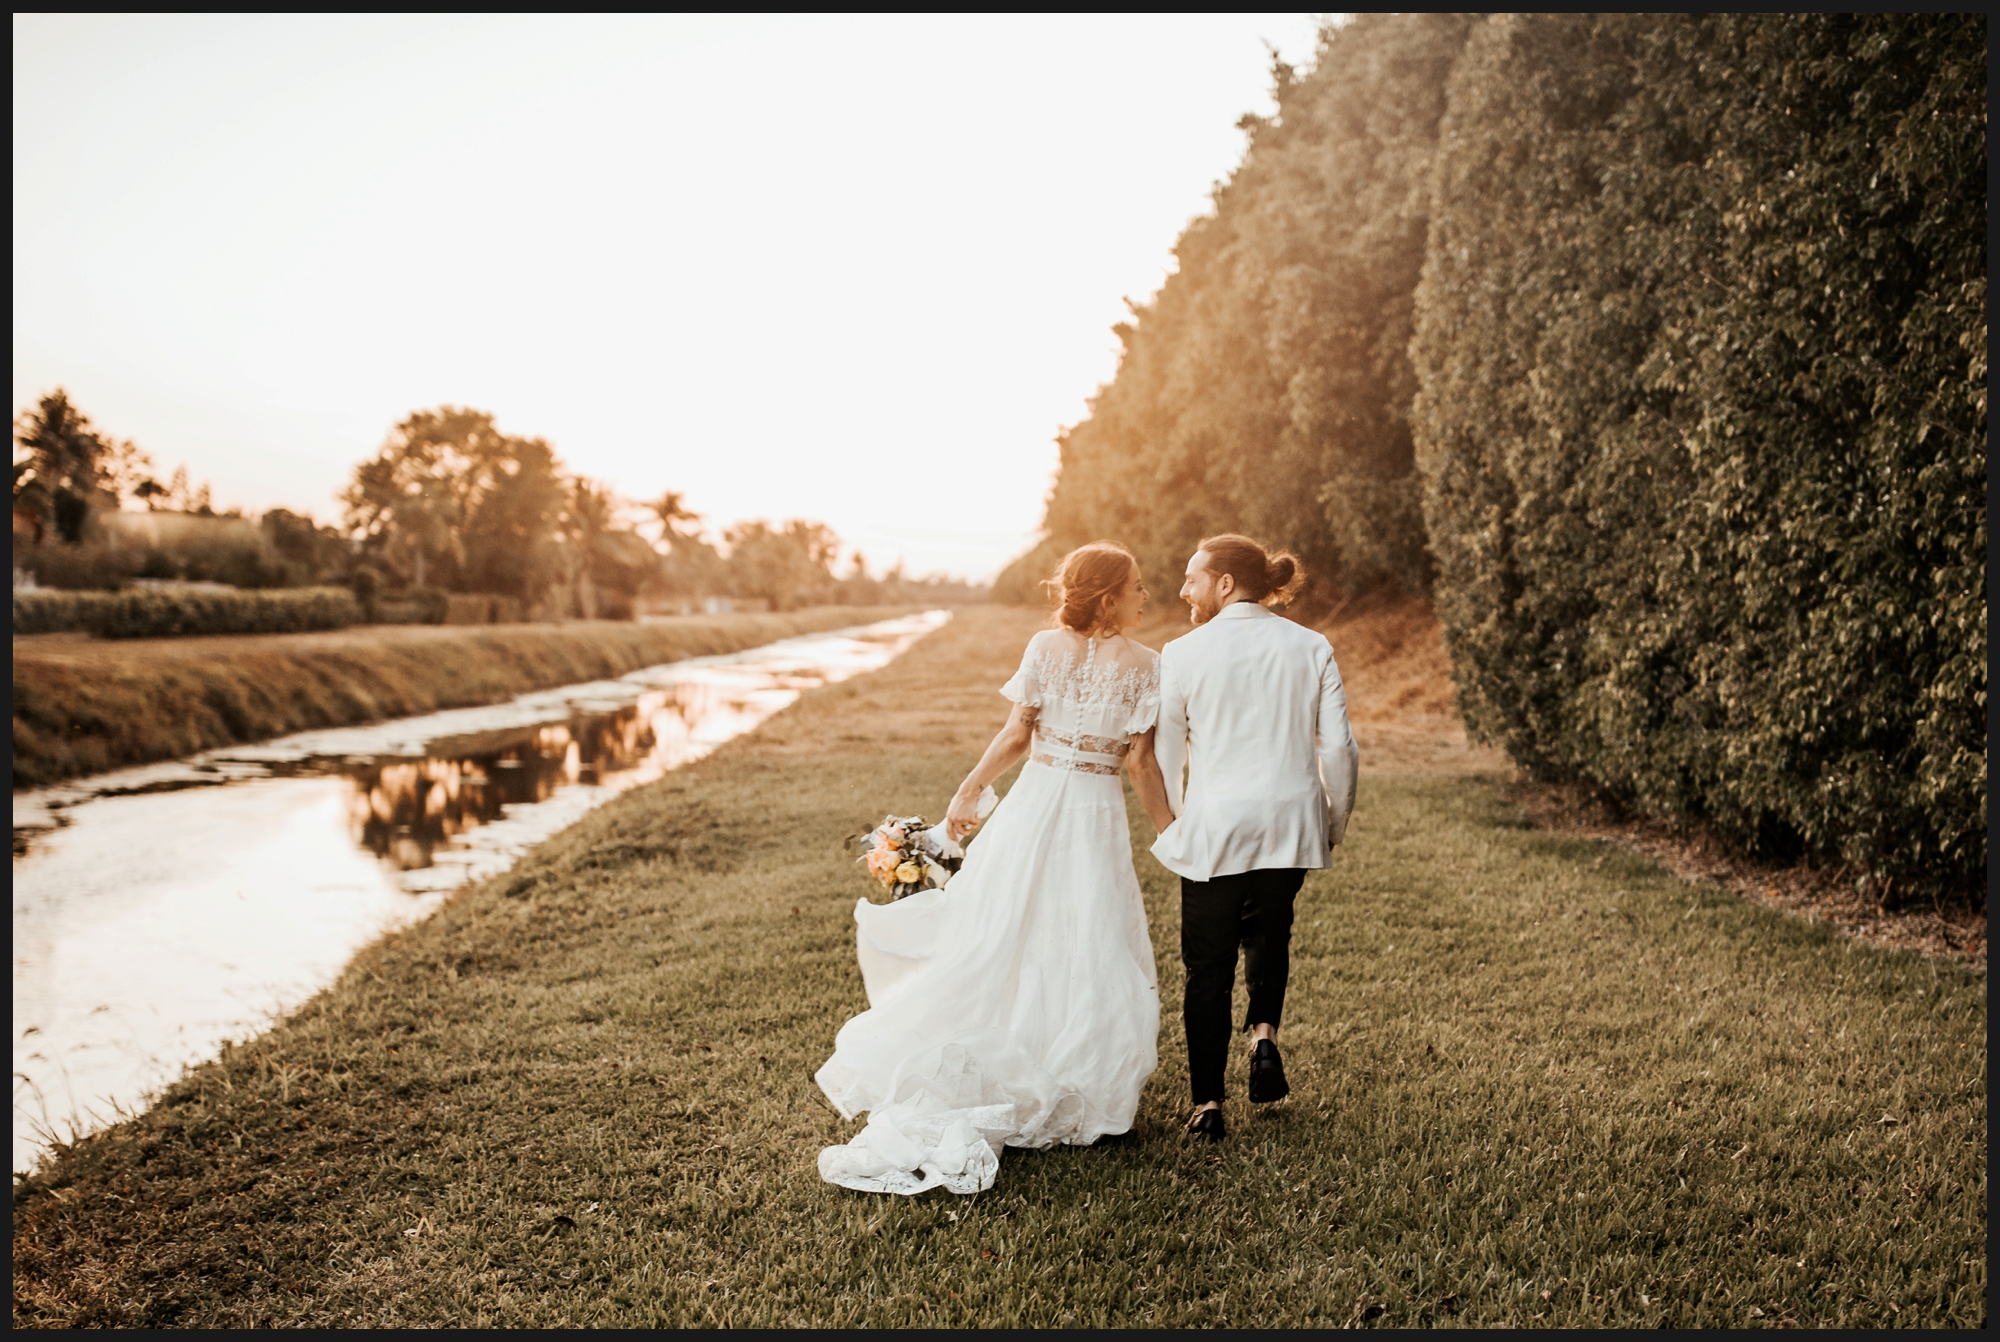 Orlando-Wedding-Photographer-destination-wedding-photographer-florida-wedding-photographer-bohemian-wedding-photographer_1902.jpg